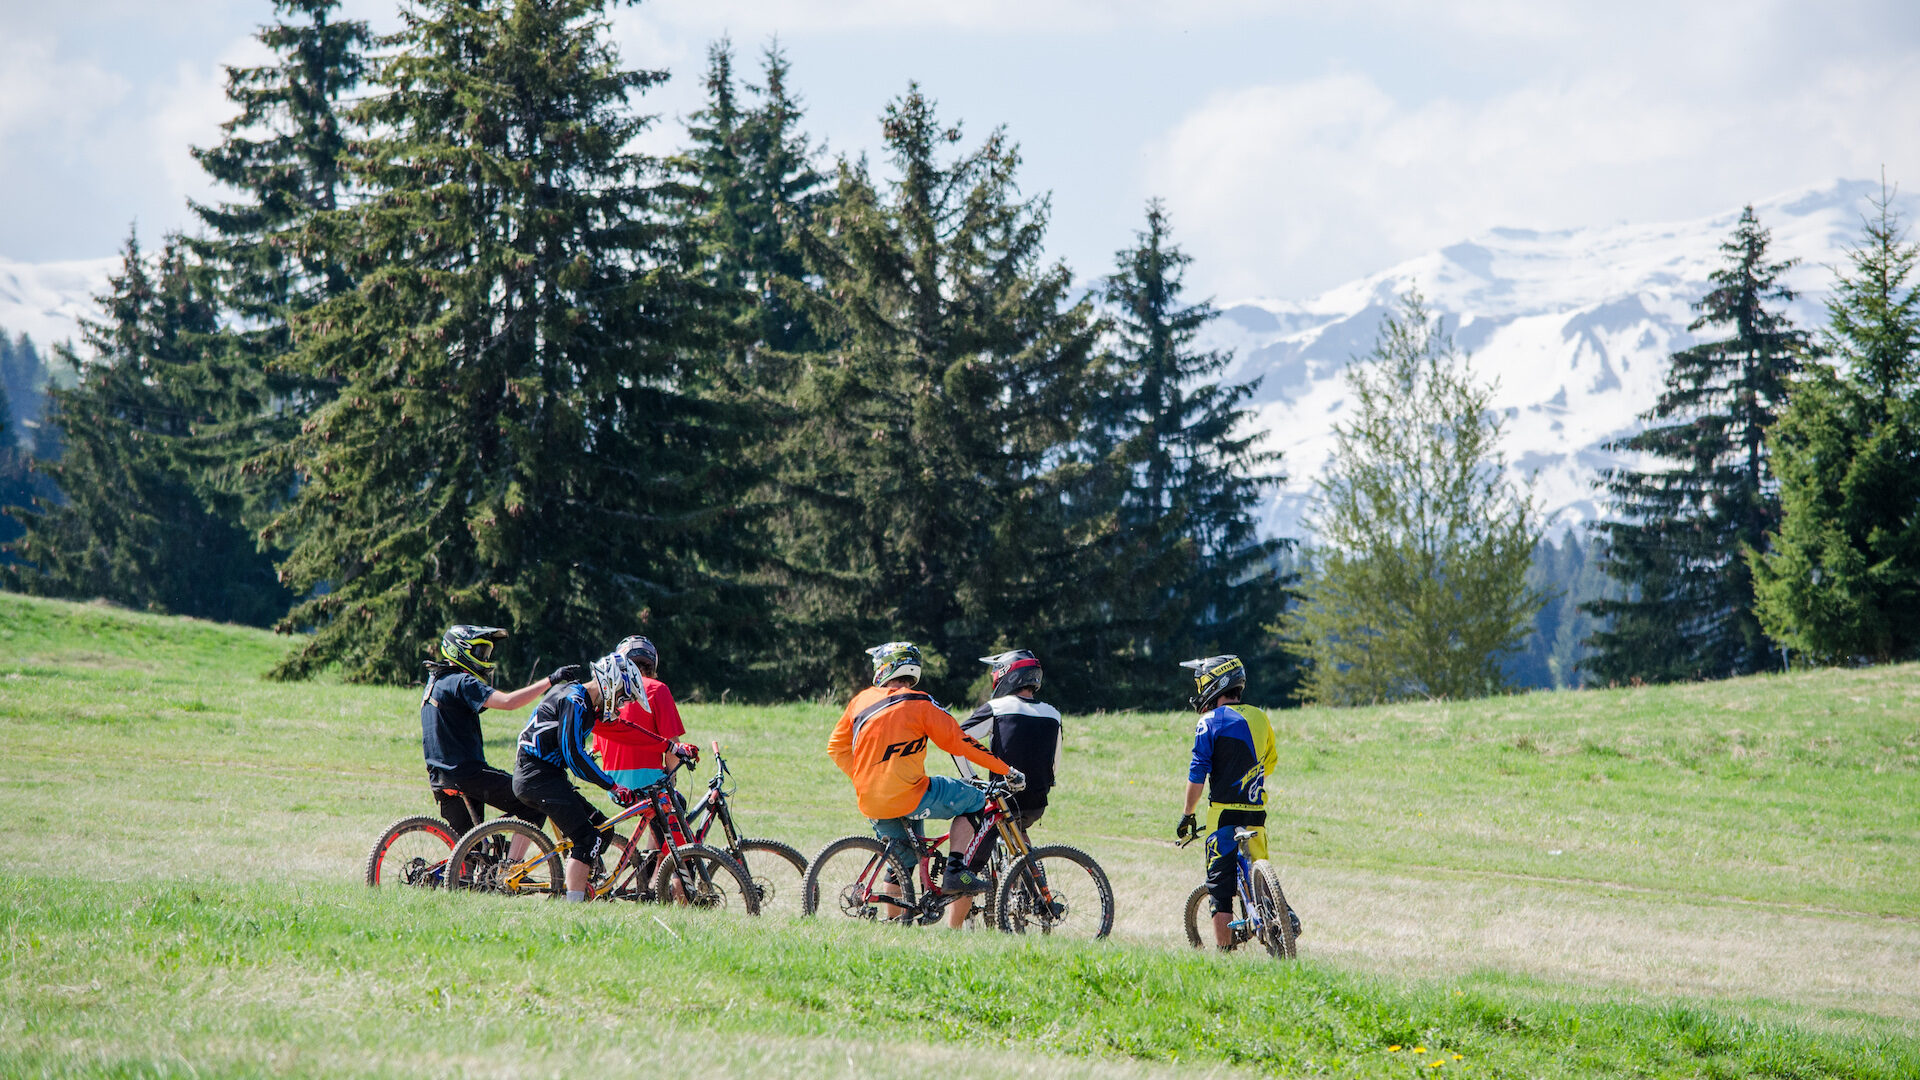 Group of friends on mountain bikes in summer